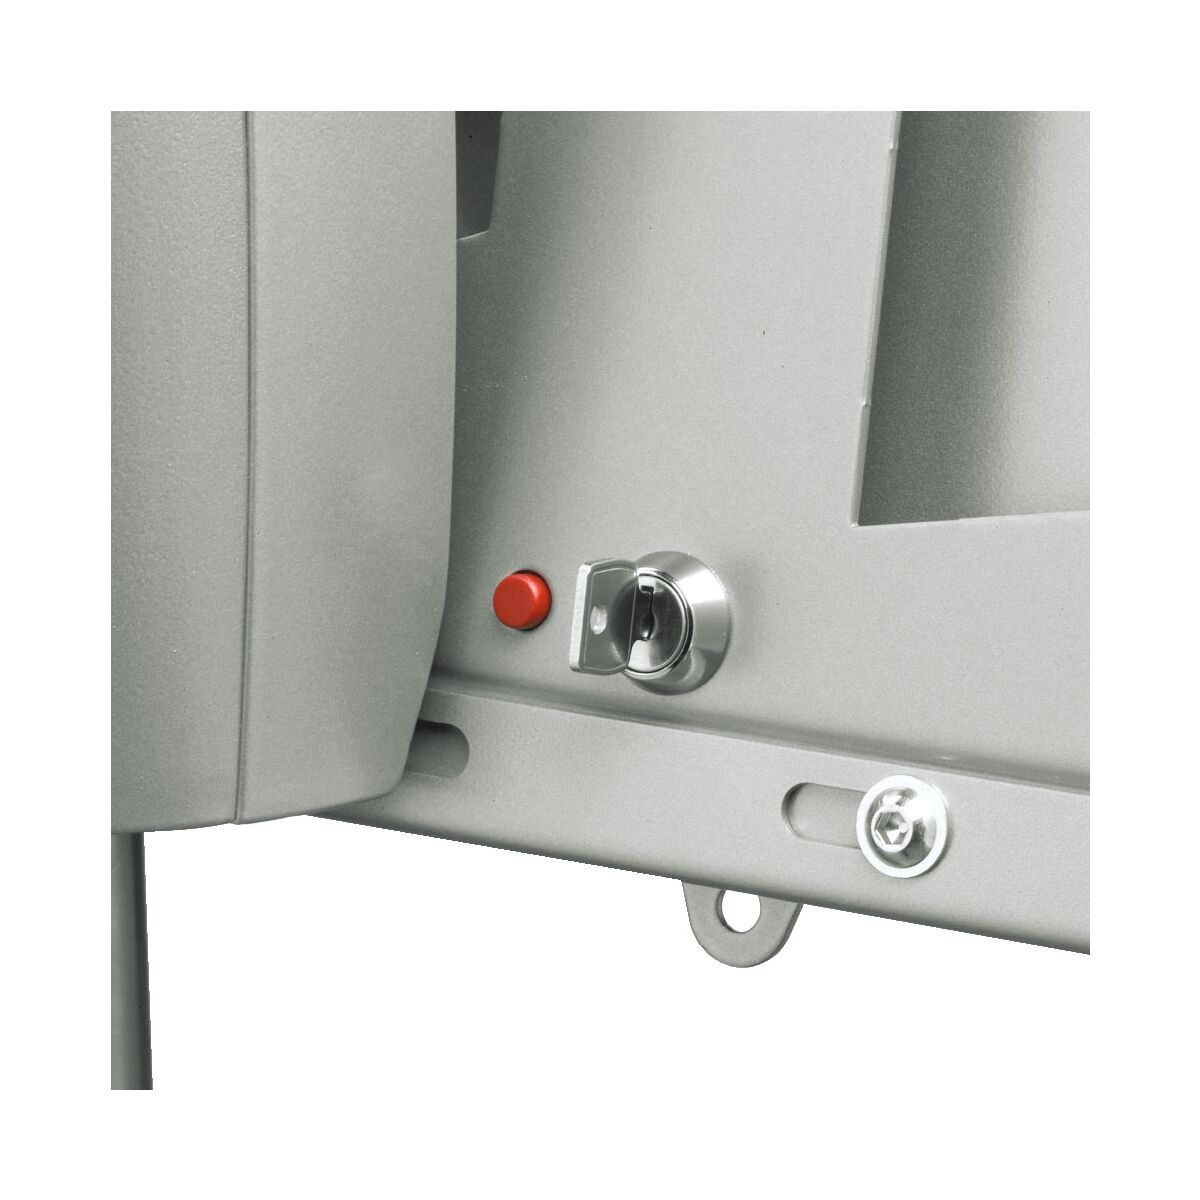 Vogel's PFA 9008 Lock - Application